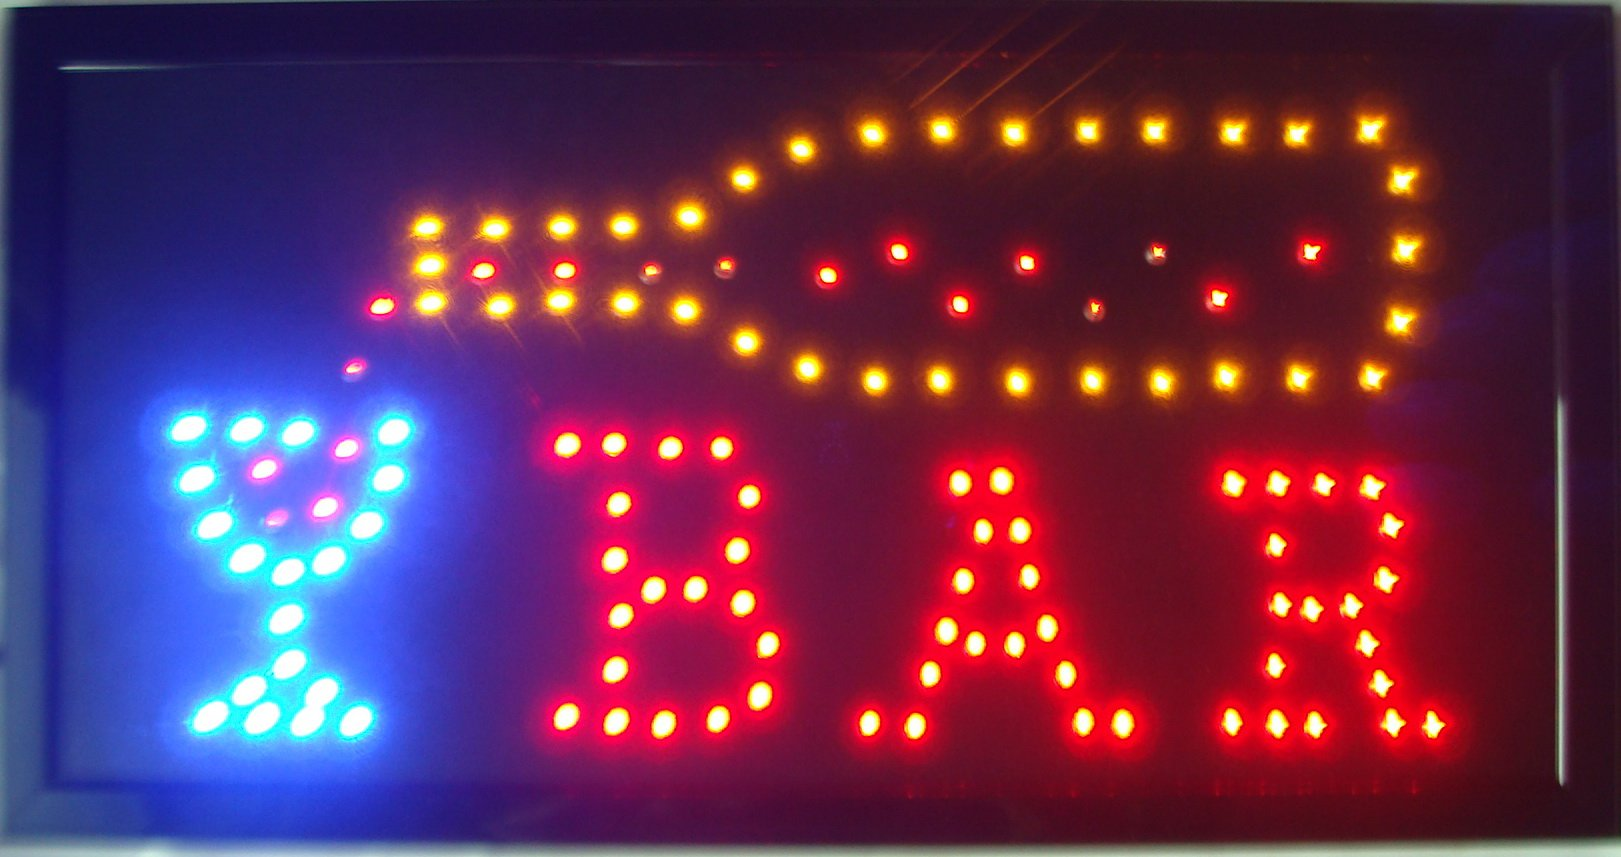 Led Bar Open Shop Sign Hot Sale Customed Low Power 10x19 Inch Semi-outdoor Ultra Bright Running Bar Shop Led Electric Sign